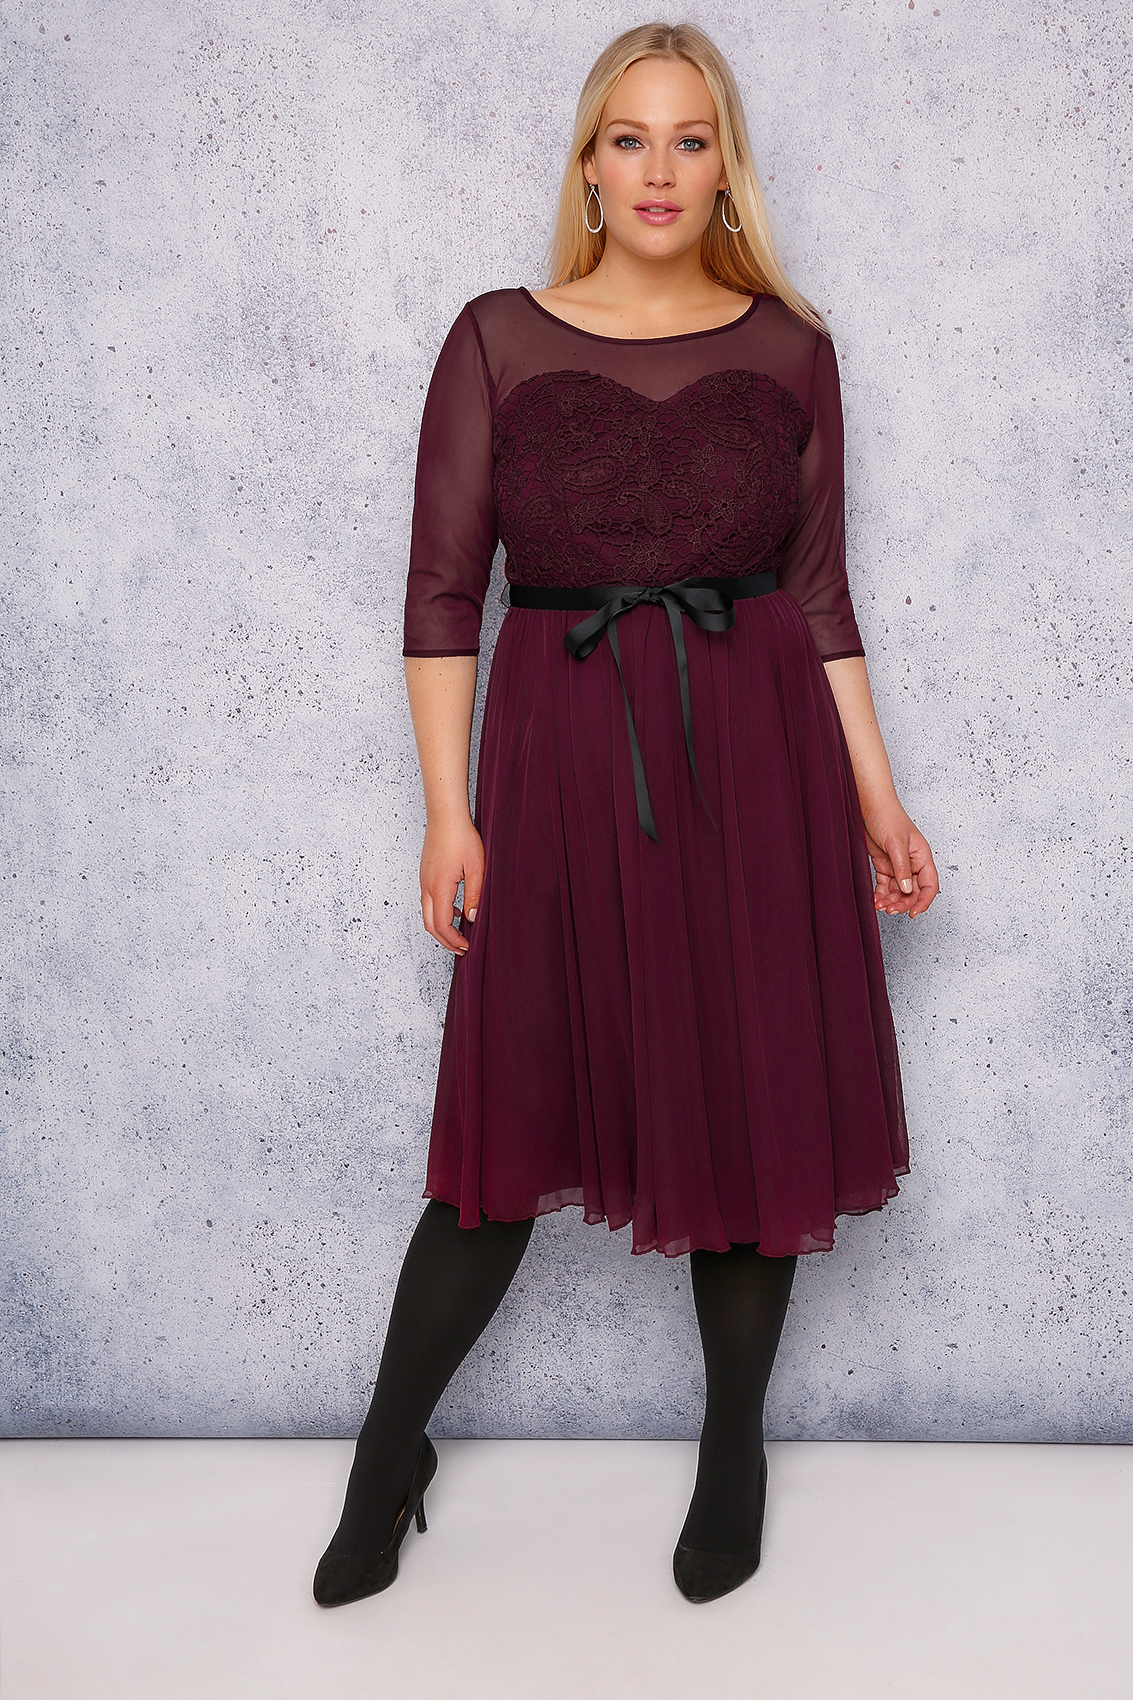 Like misses' sizes, the sizes may be given as a dress size based on the bust measurement, but they are usually given as even-numbered sizes from 18 up. Categorical sizes usually range from 1X (similar to extra-large, but with slightly different proportions compared to the misses' size) up.